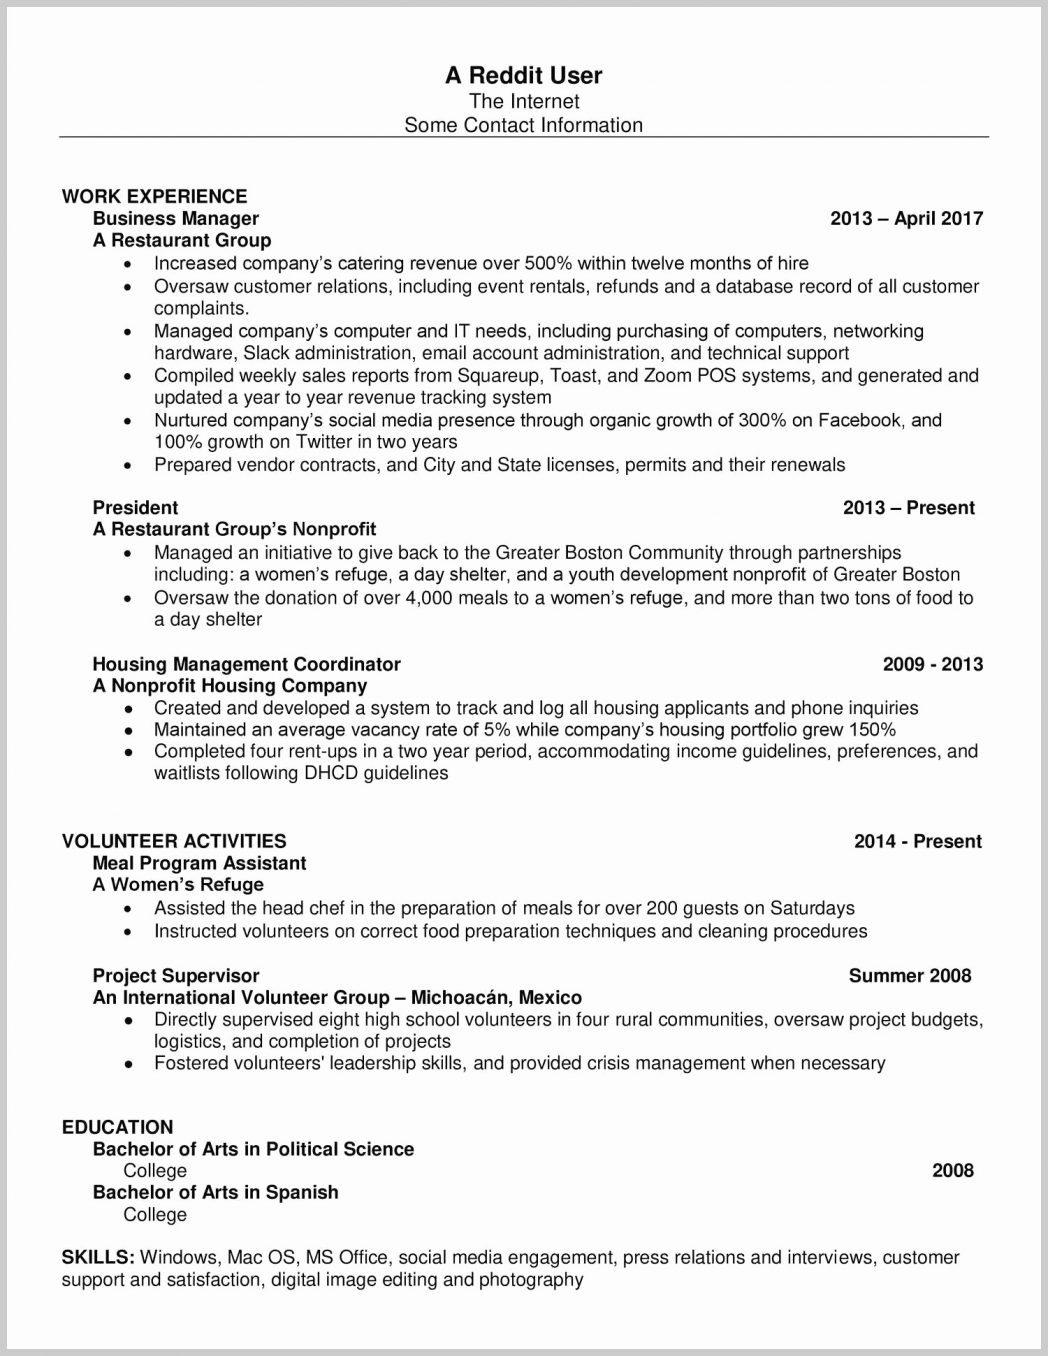 resume format reddit templates programming projects for opening statement examples Resume Programming Projects For Resume Reddit